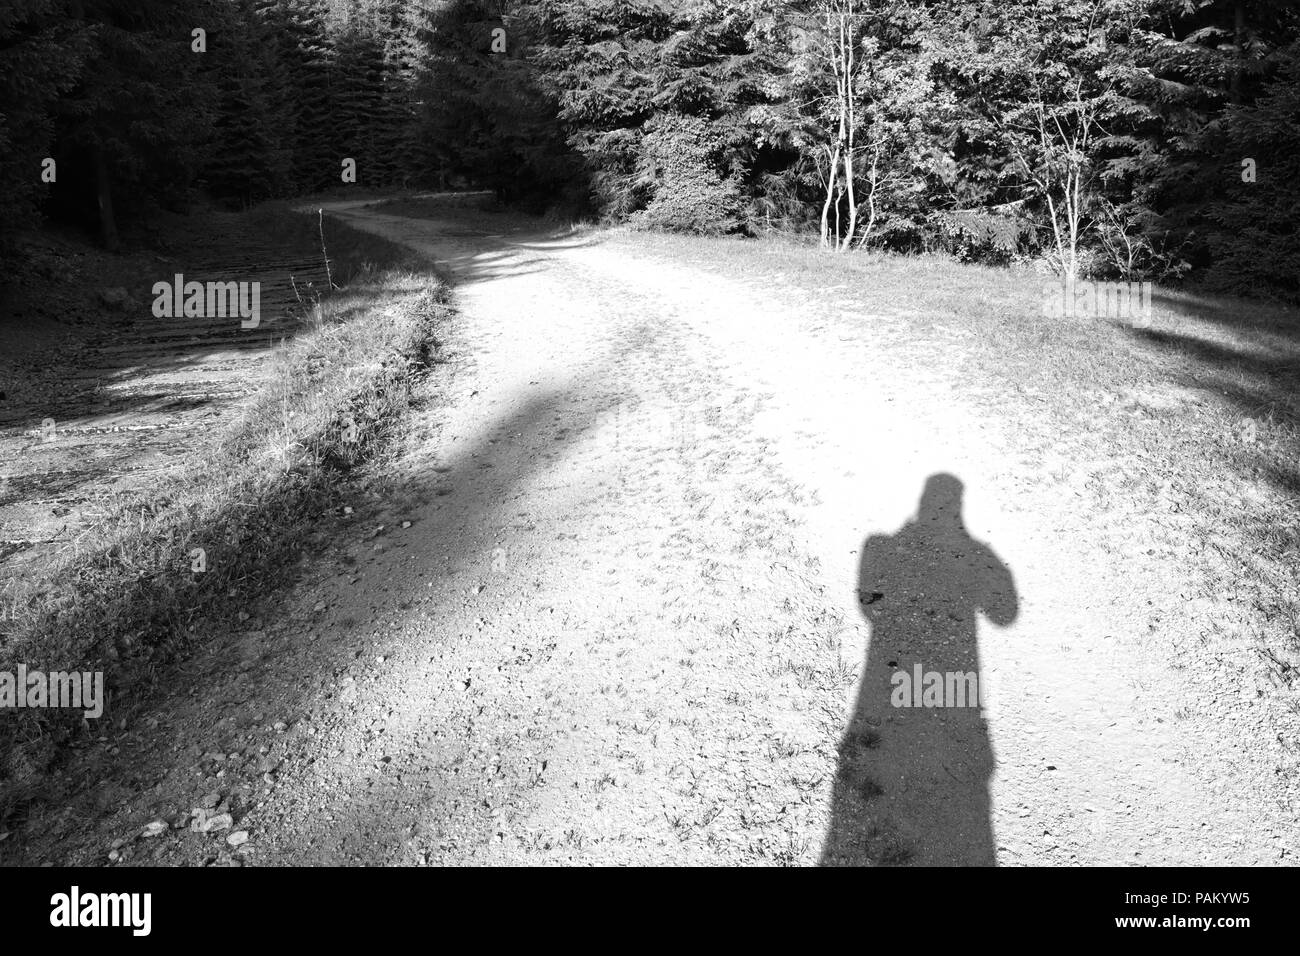 My shadow on the mountain road black and white - Stock Image